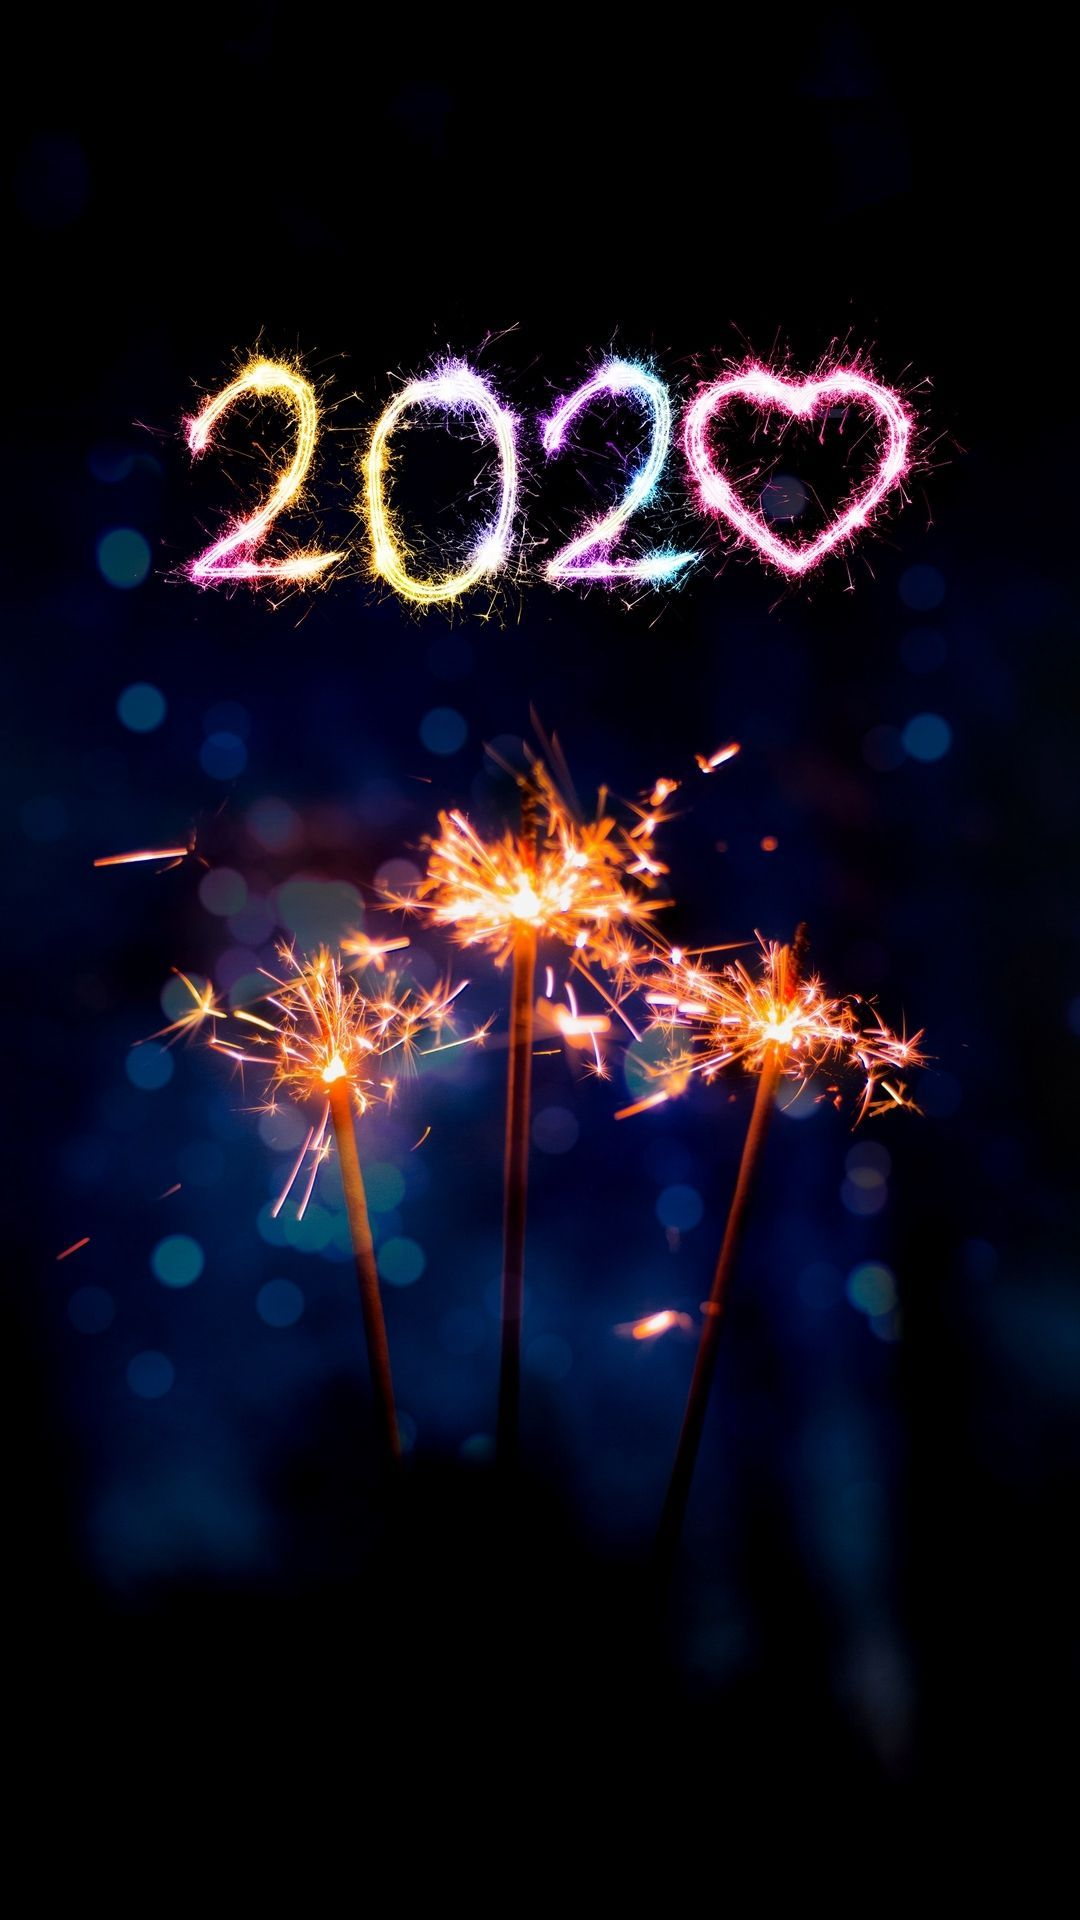 new year 2020 wallpaper in 2020 Happy new year